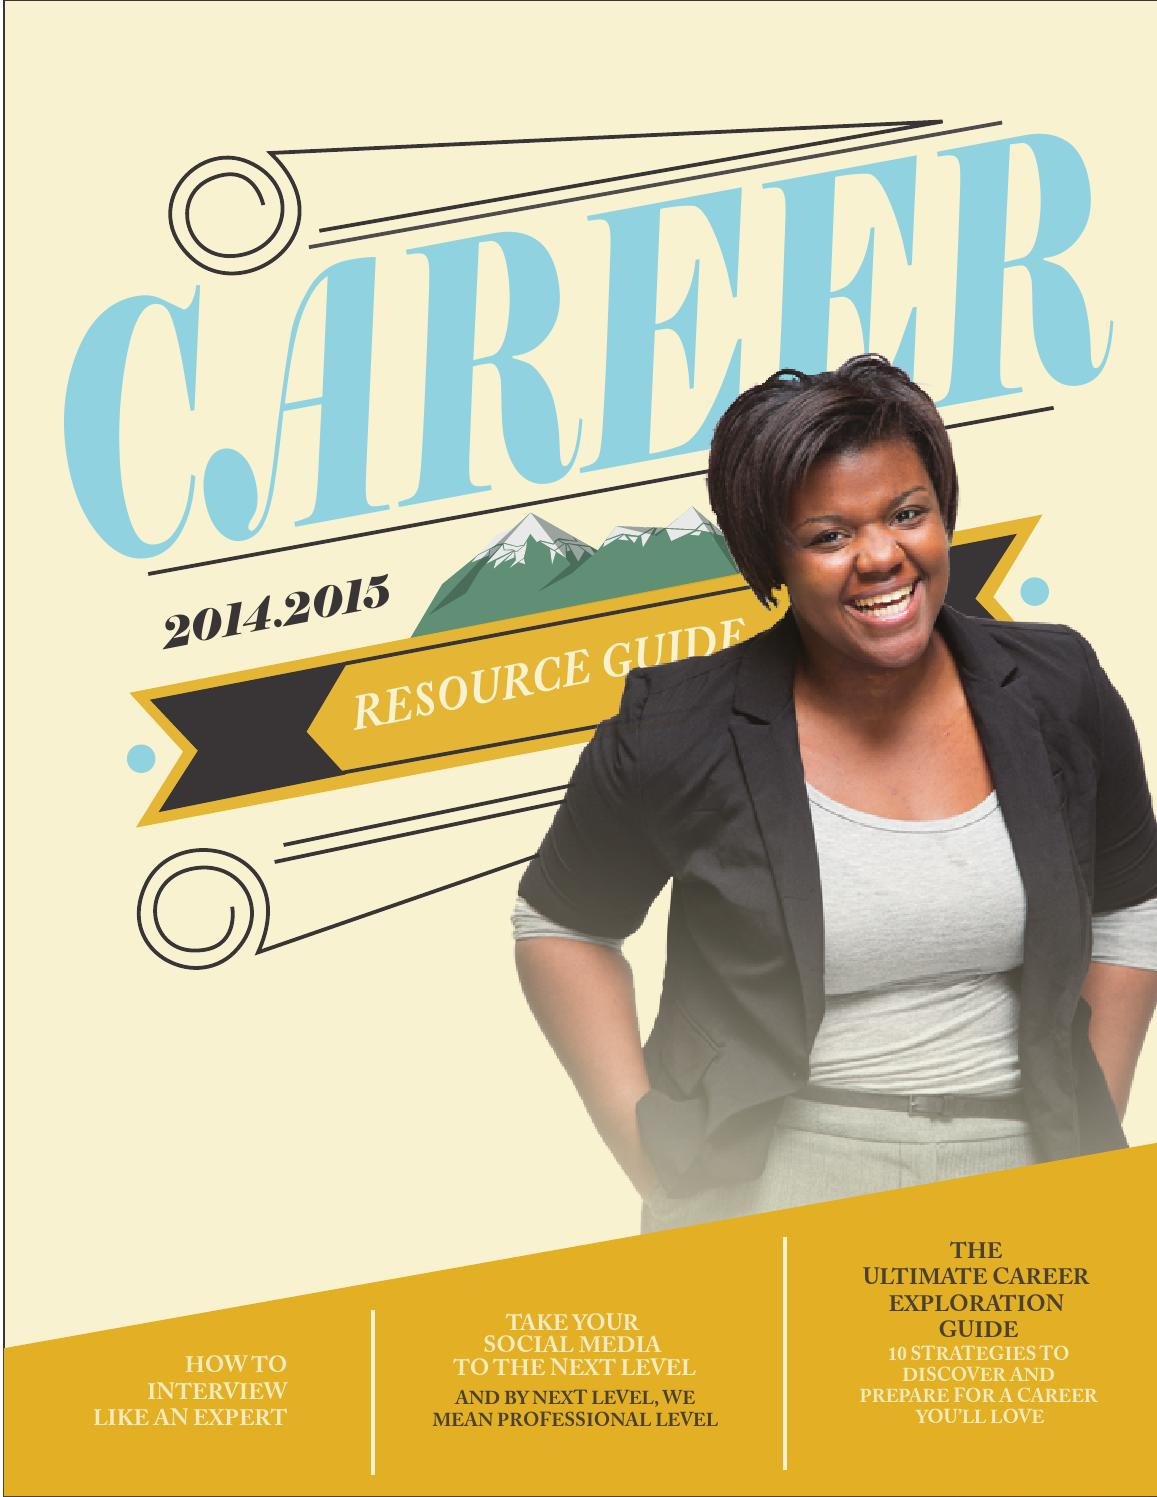 nau career resource guide 2014 2015  cover and pages by